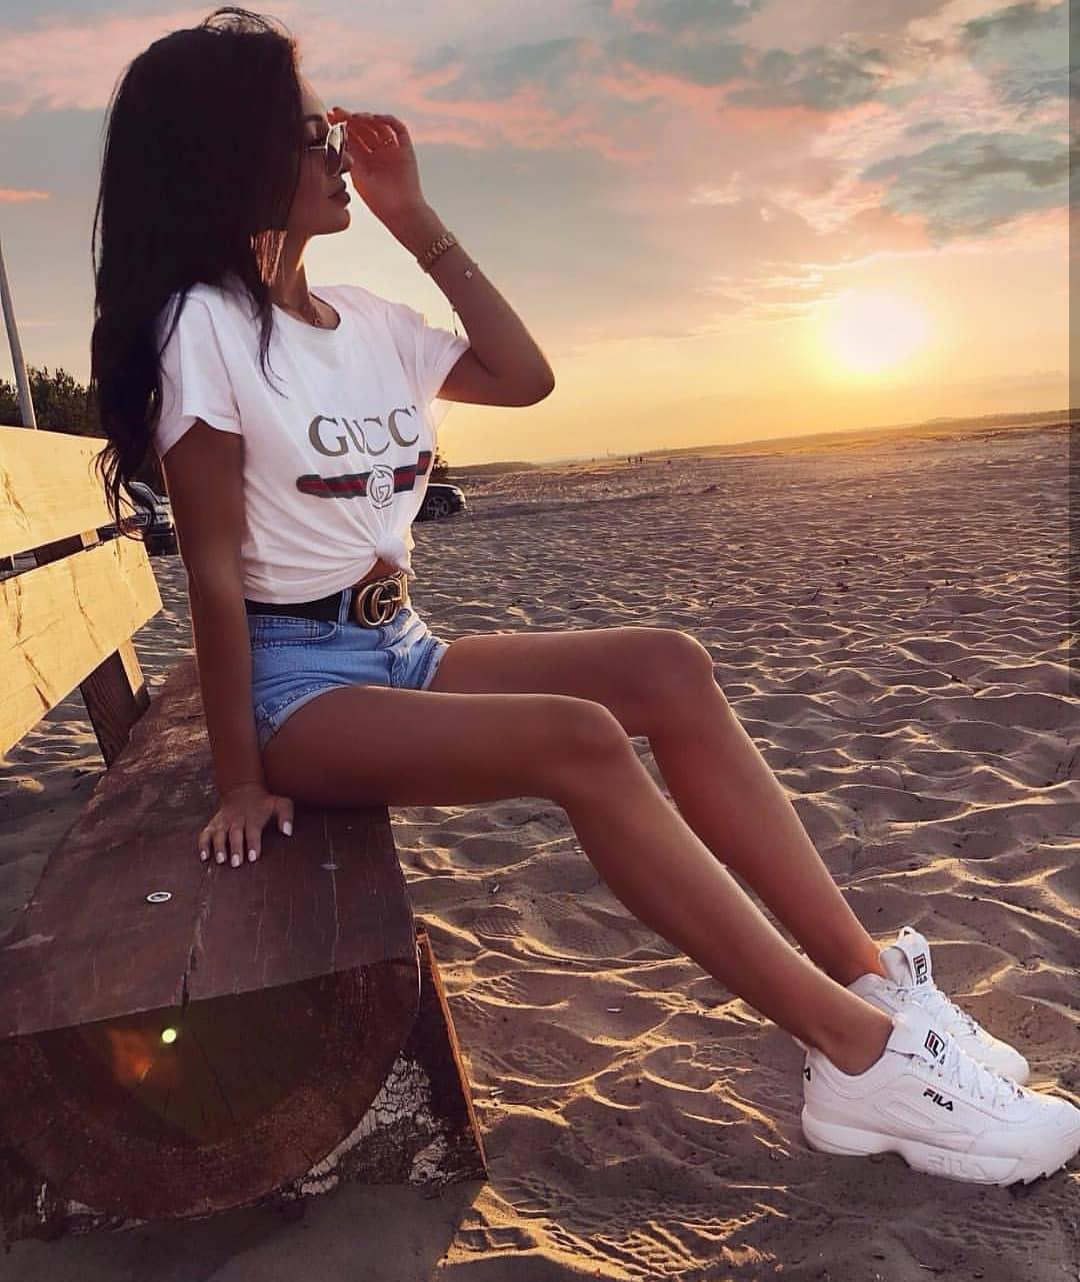 Casual Beachwear: White Tee, Denim Shorts And White Sneakers 2020